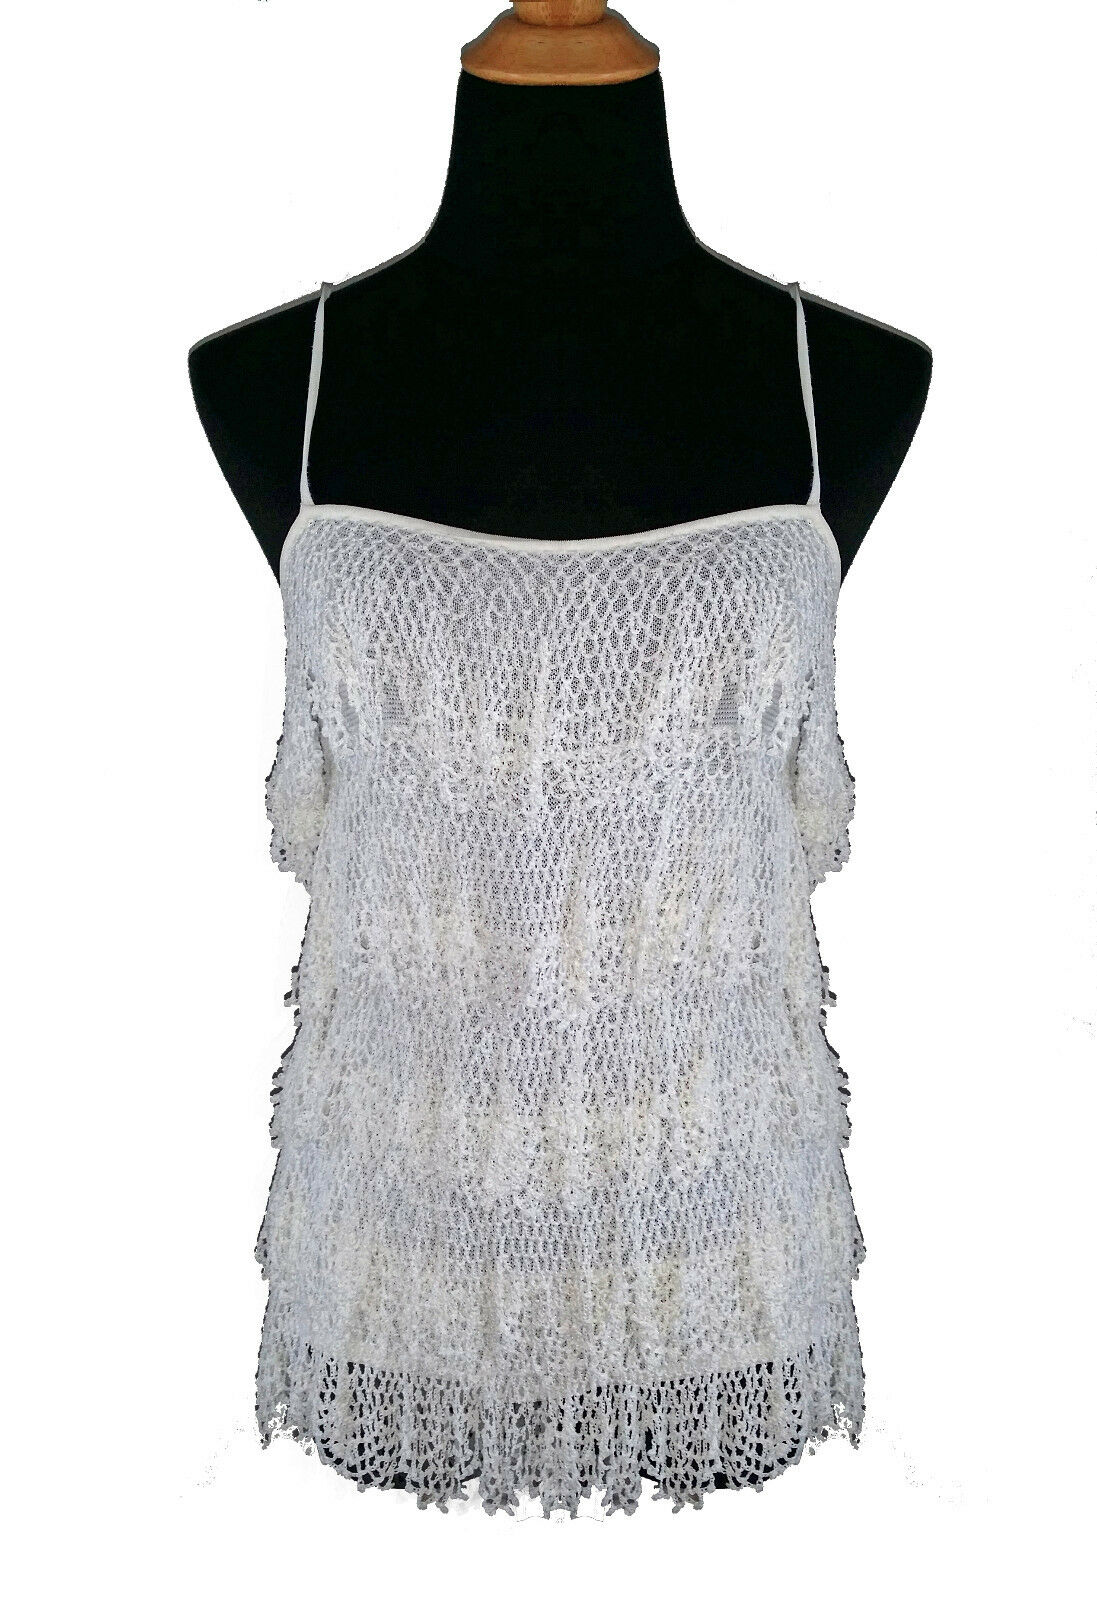 Dolce & Gabbana Stretch Weiß Knit Top with Crochet Lace Ruffles s44